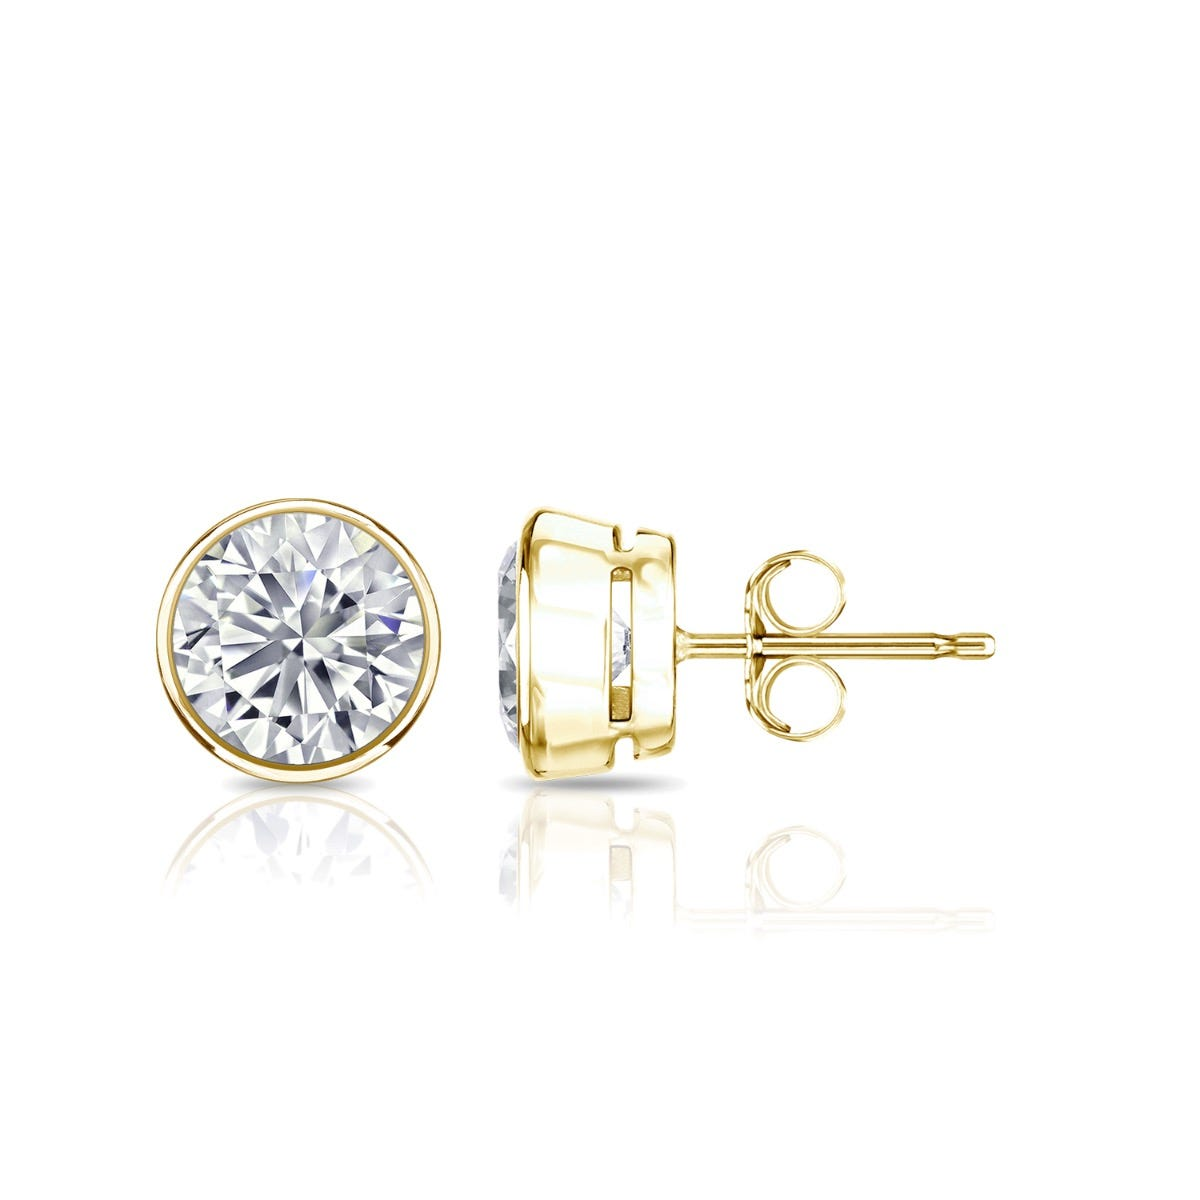 Diamond Round Bezel-Set 1ctw. Solitaire Stud (IJ-I2) Earrings in 18K Yellow Gold